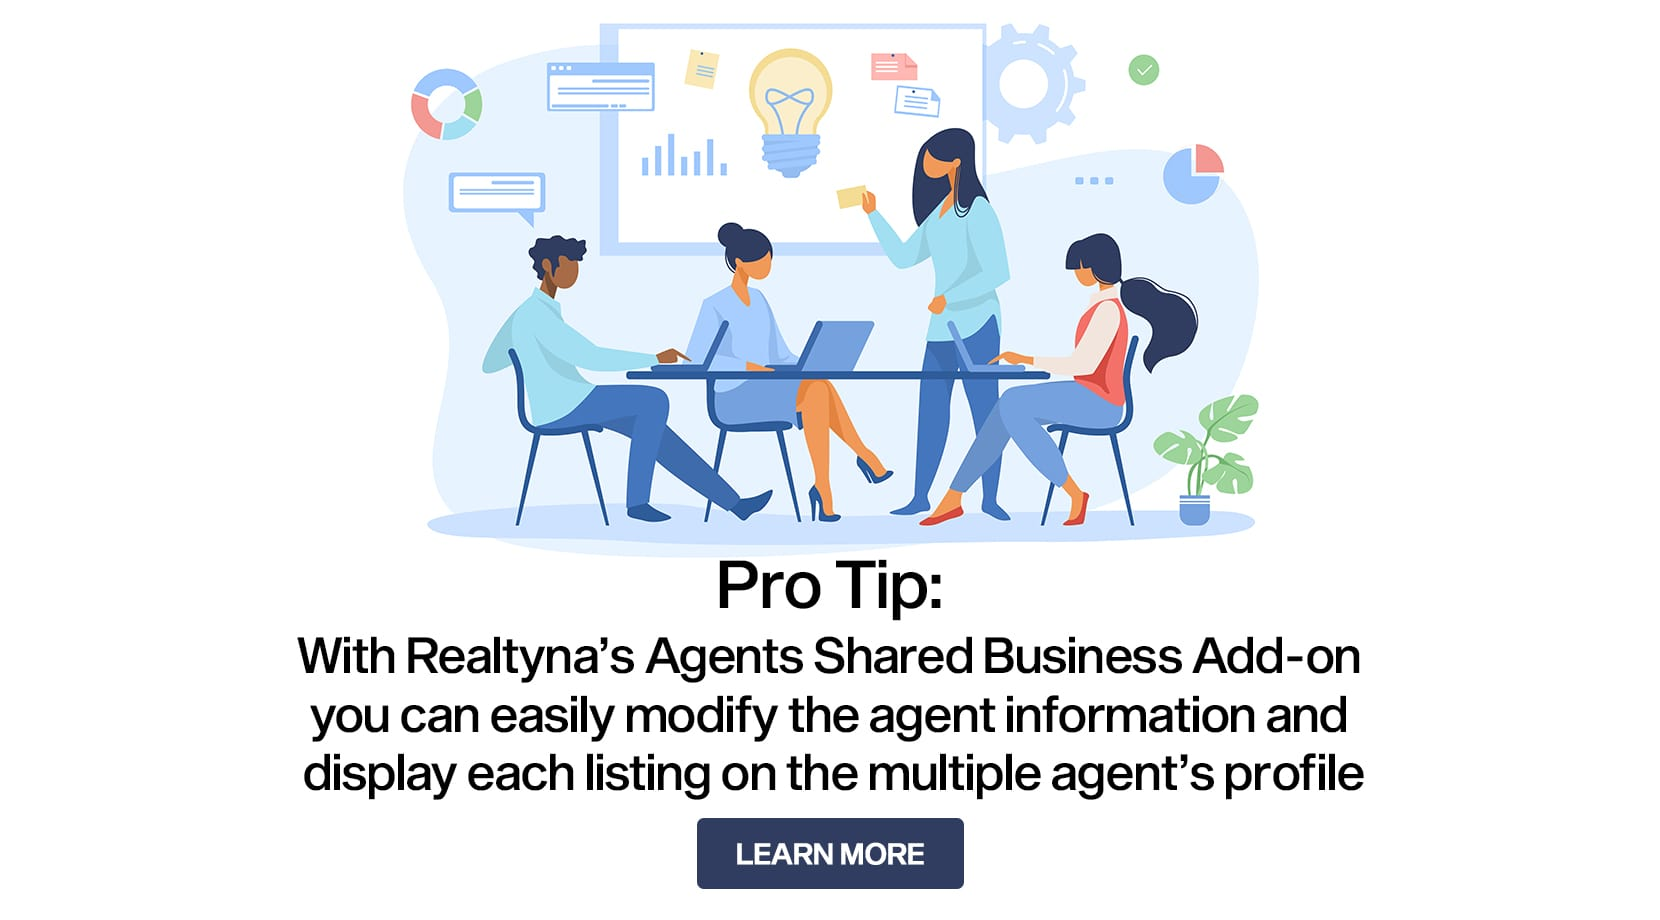 Realtyna's Agents Shared Business